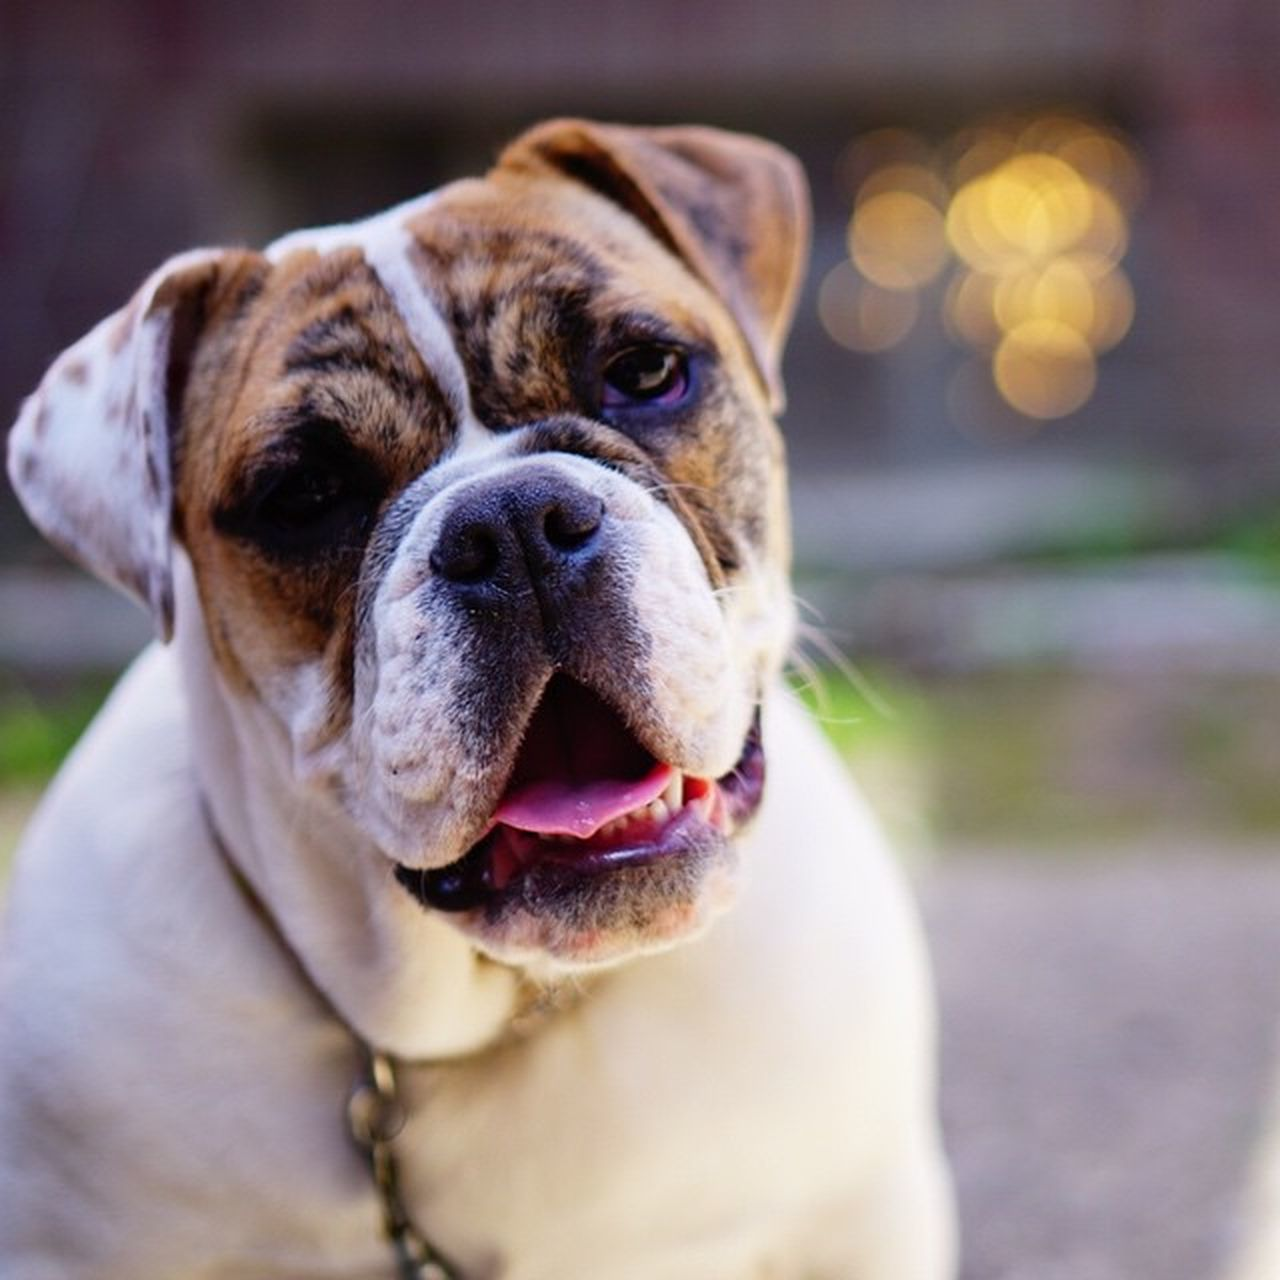 dog, pets, one animal, domestic animals, mammal, animal themes, outdoors, focus on foreground, no people, portrait, close-up, day, looking at camera, nature